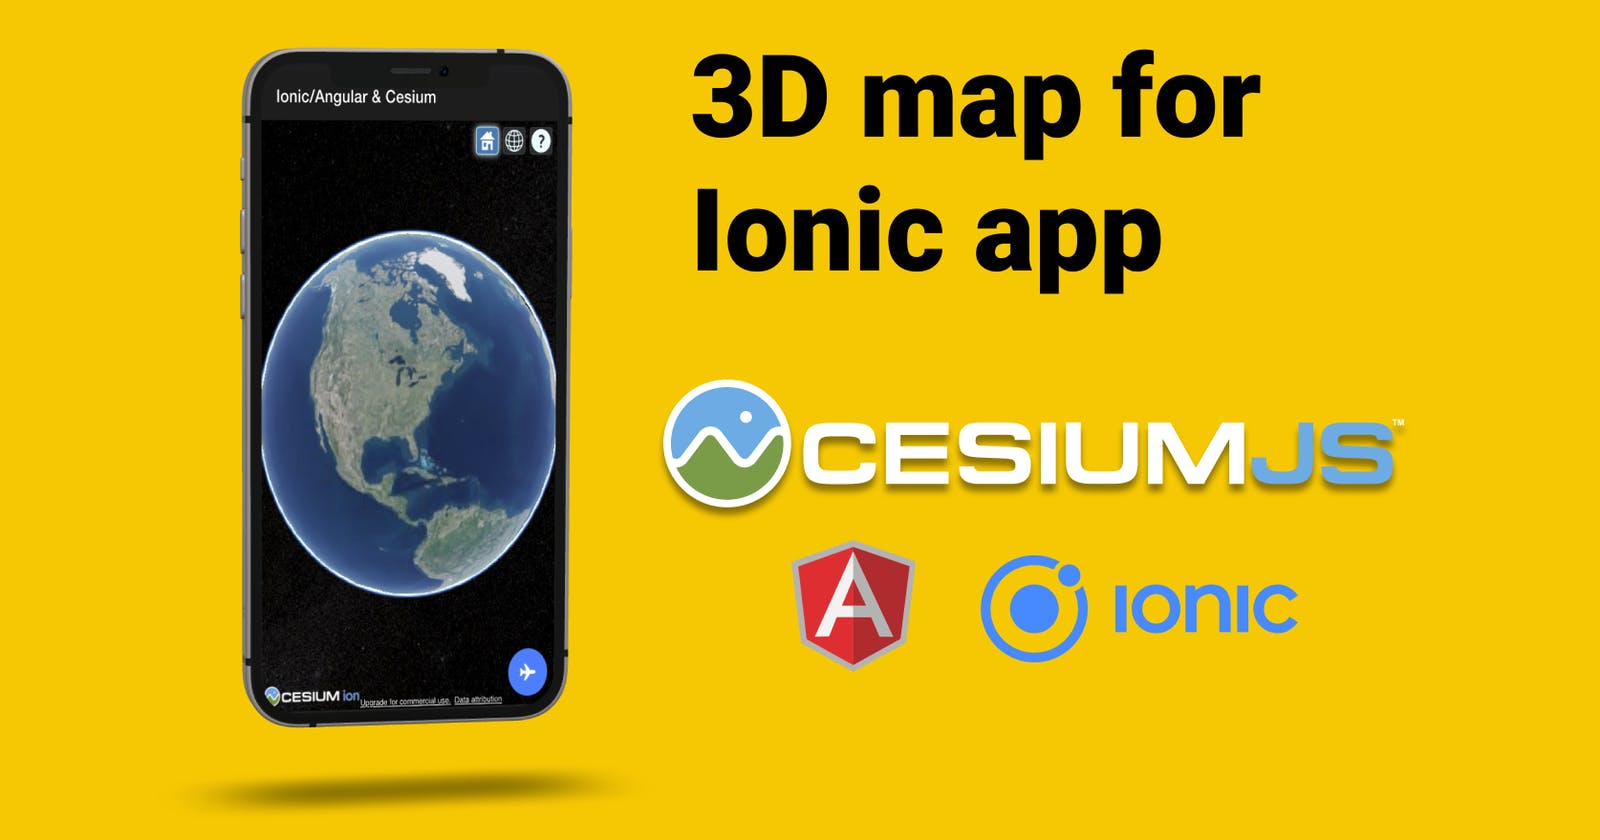 3D map for your Ionic app